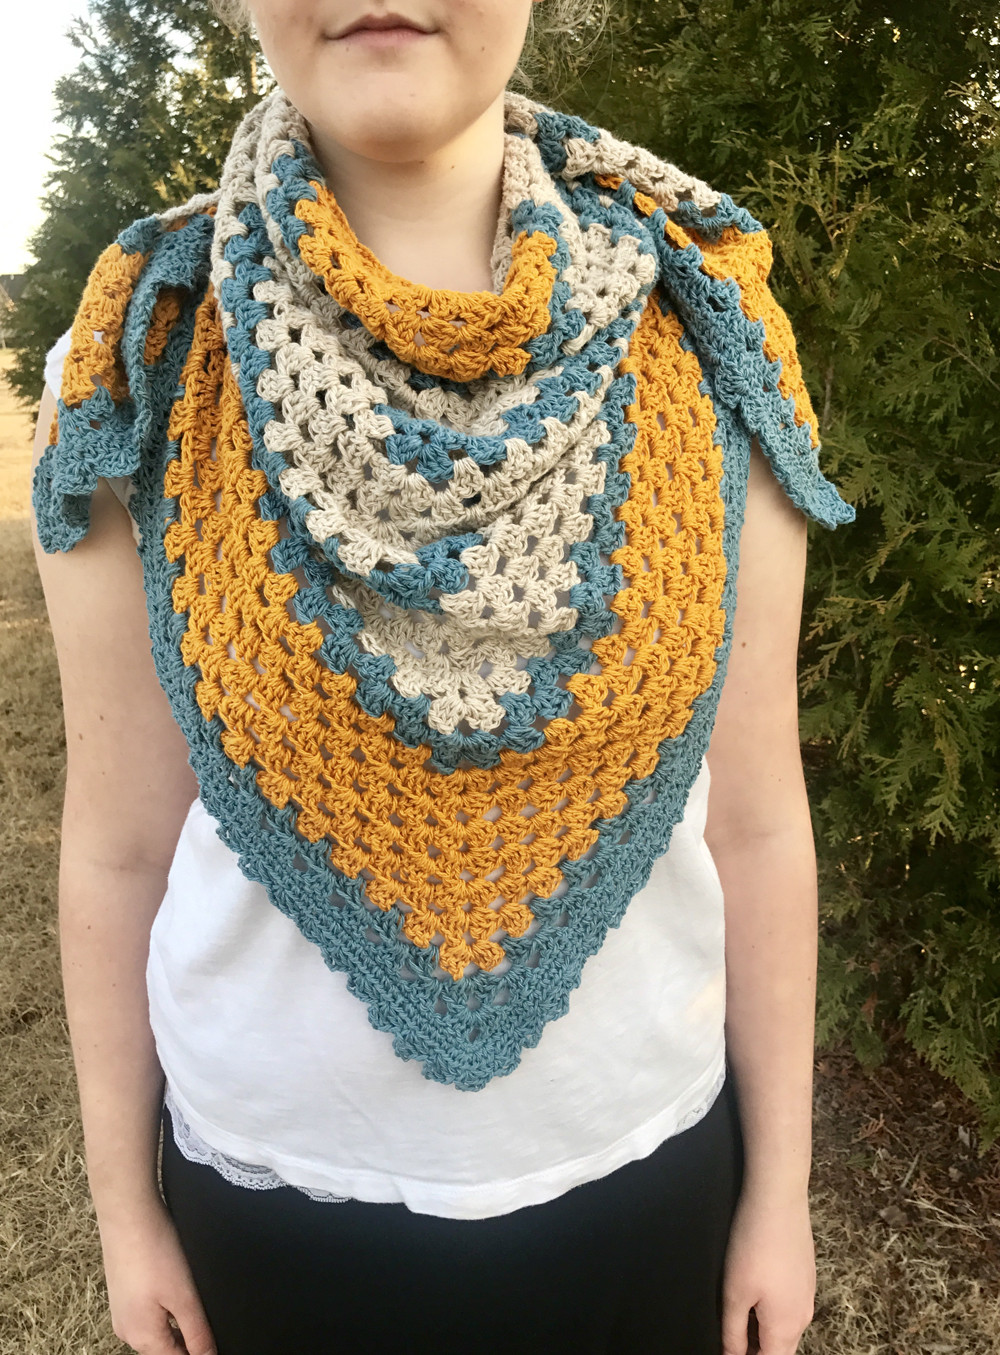 Lovely A Sunny Day Triangle Shawl Crochet Pattern by Little Crochet Triangle Of Amazing 48 Ideas Crochet Triangle